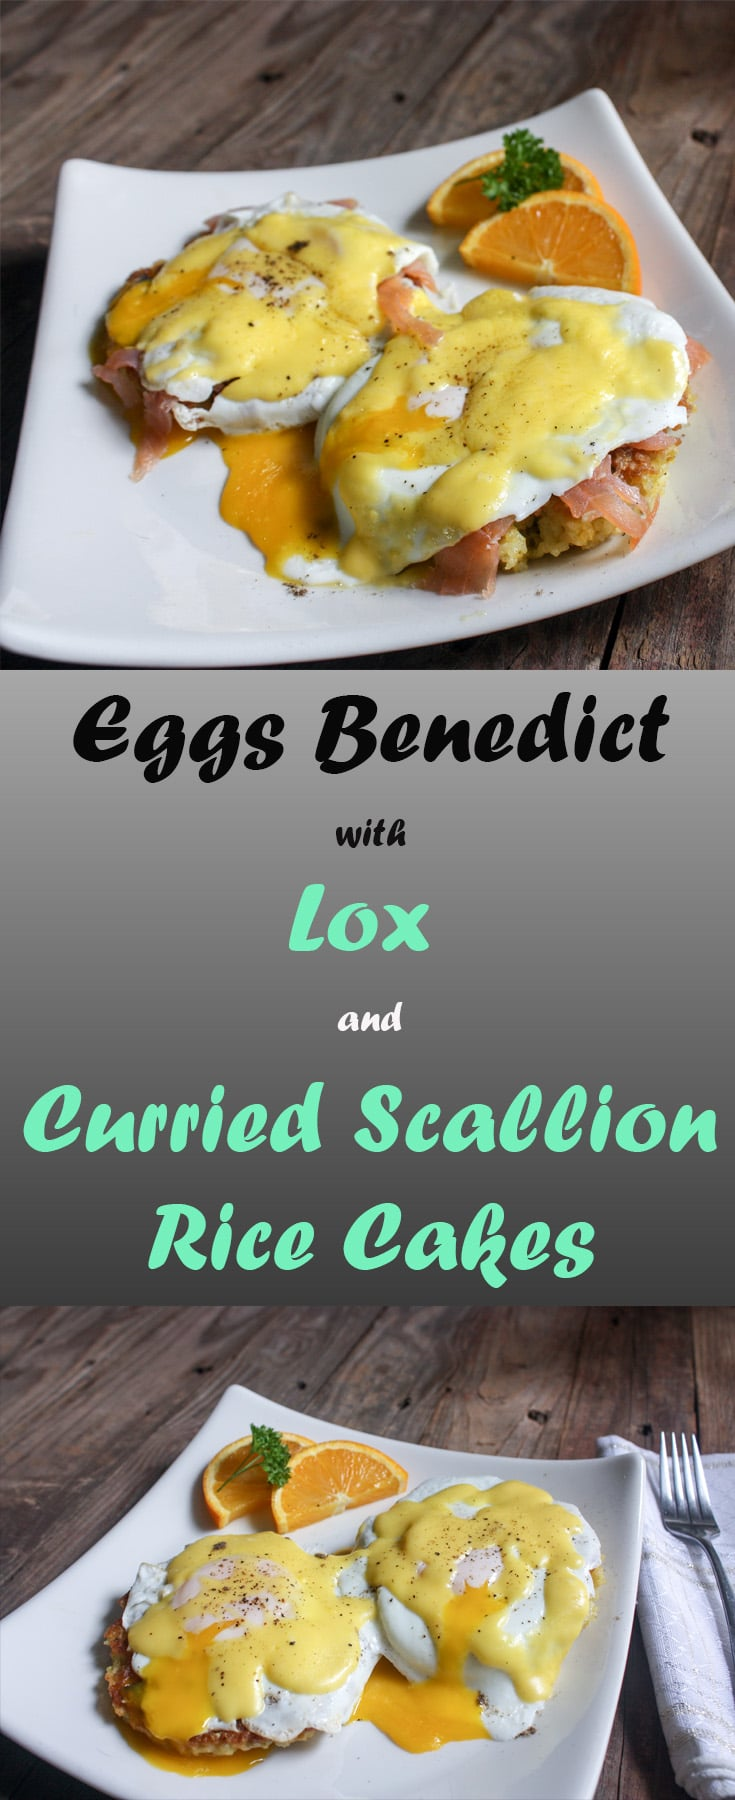 Eggs Benedict, Lox with Curried Scallion and Rice Cakes Pin